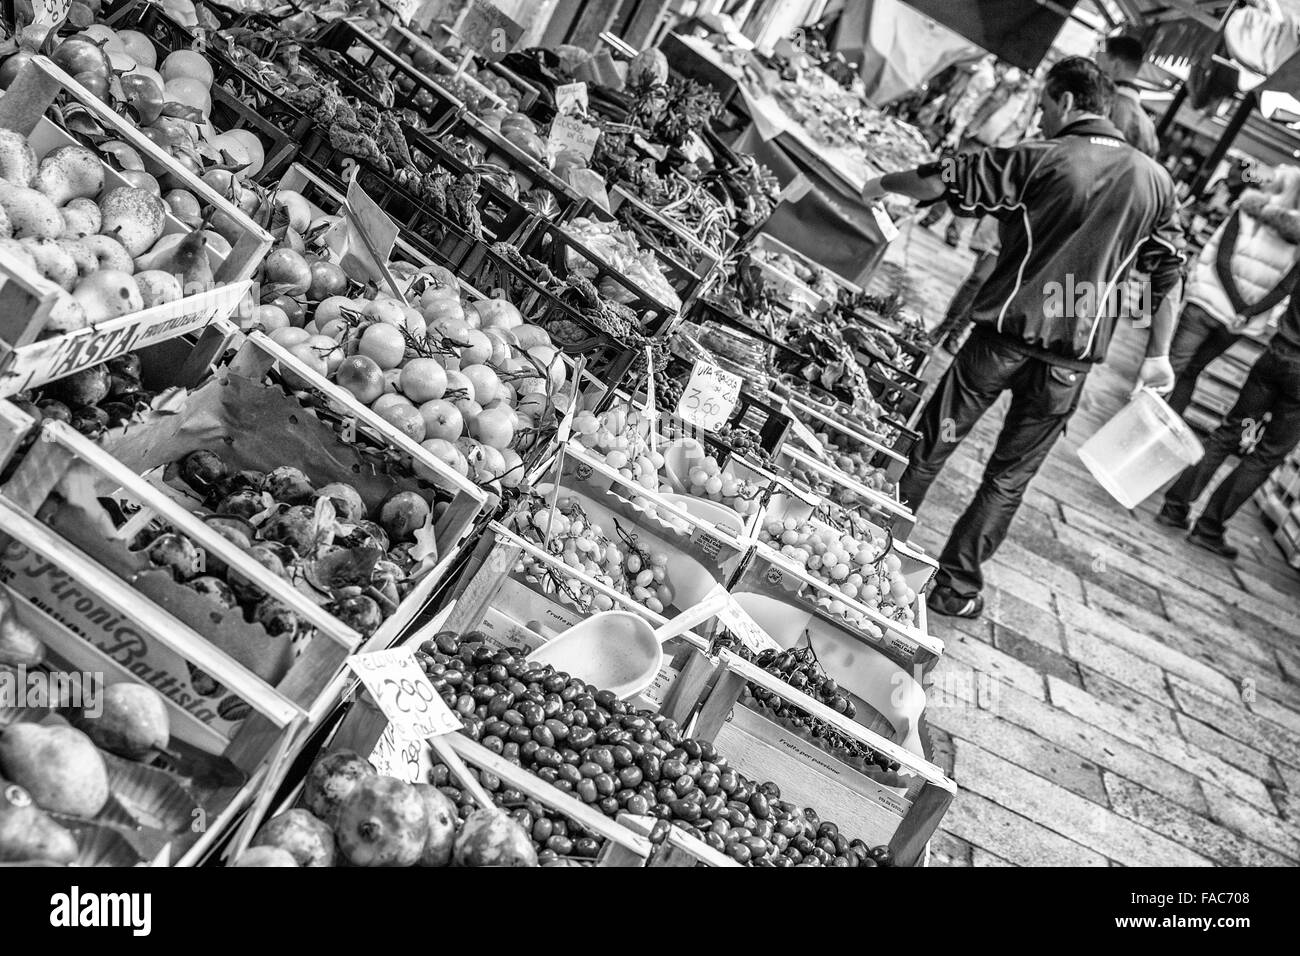 Rialto Fruit and Vegetables Market, Venice - Stock Image